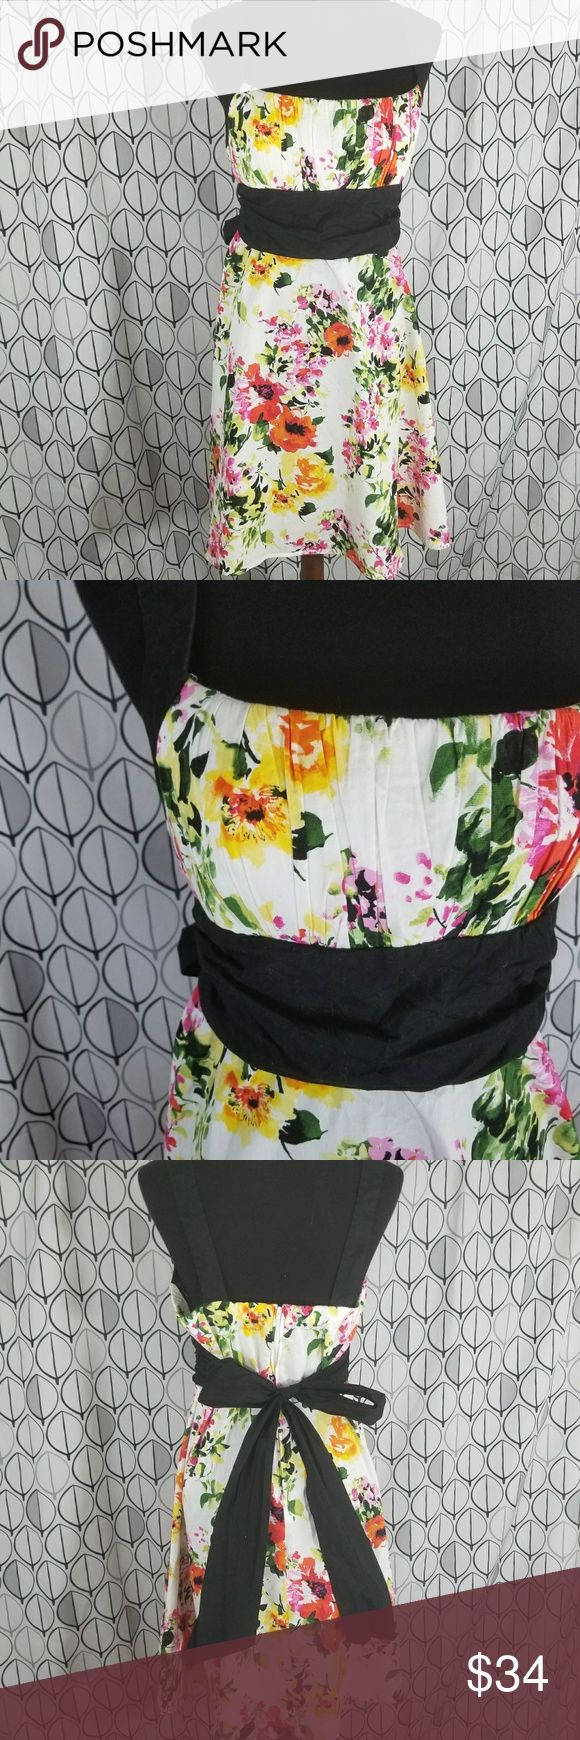 """B. Smart  White Spring Floral Tie waist SunDress B. SMART Dress with Black straps and Empire waist tie back. Gathered square bustline. With prettt floral pattern okn a white background.  Pink yellow red orage flowers with green leaves. Hidden zippered center back. Size 16 measurements laying flat are approximate bust 19"""" has some stretch waist 17"""" length armpit to hem 26"""" fun Spring Summer dress for weddings and graduations.  Semi casual.dress for Tea and fun summer days and nights. Get in…"""